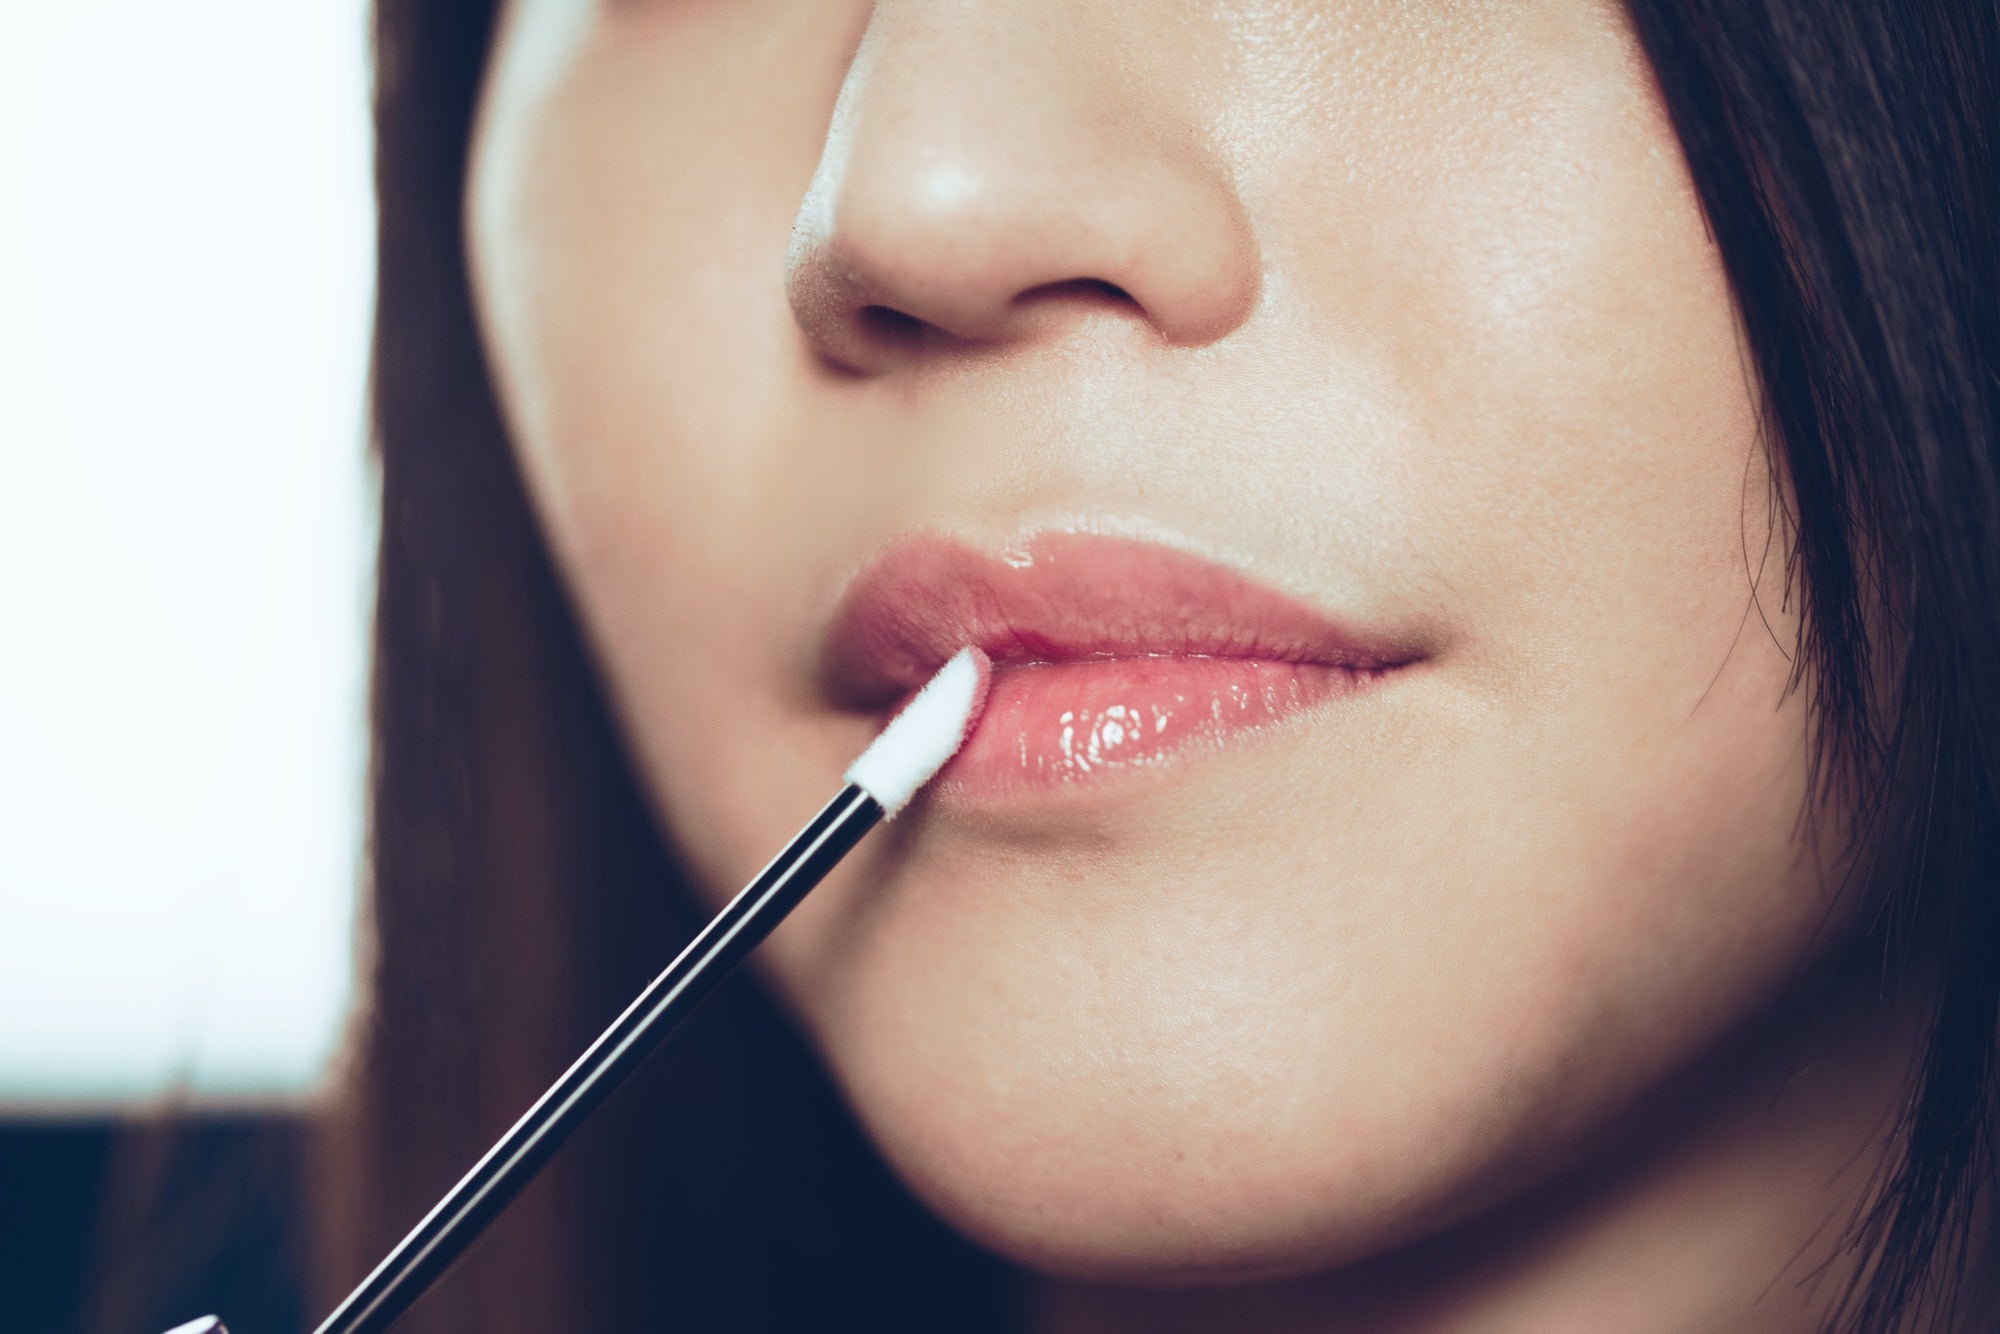 Close up of a woman applying clear lip gloss